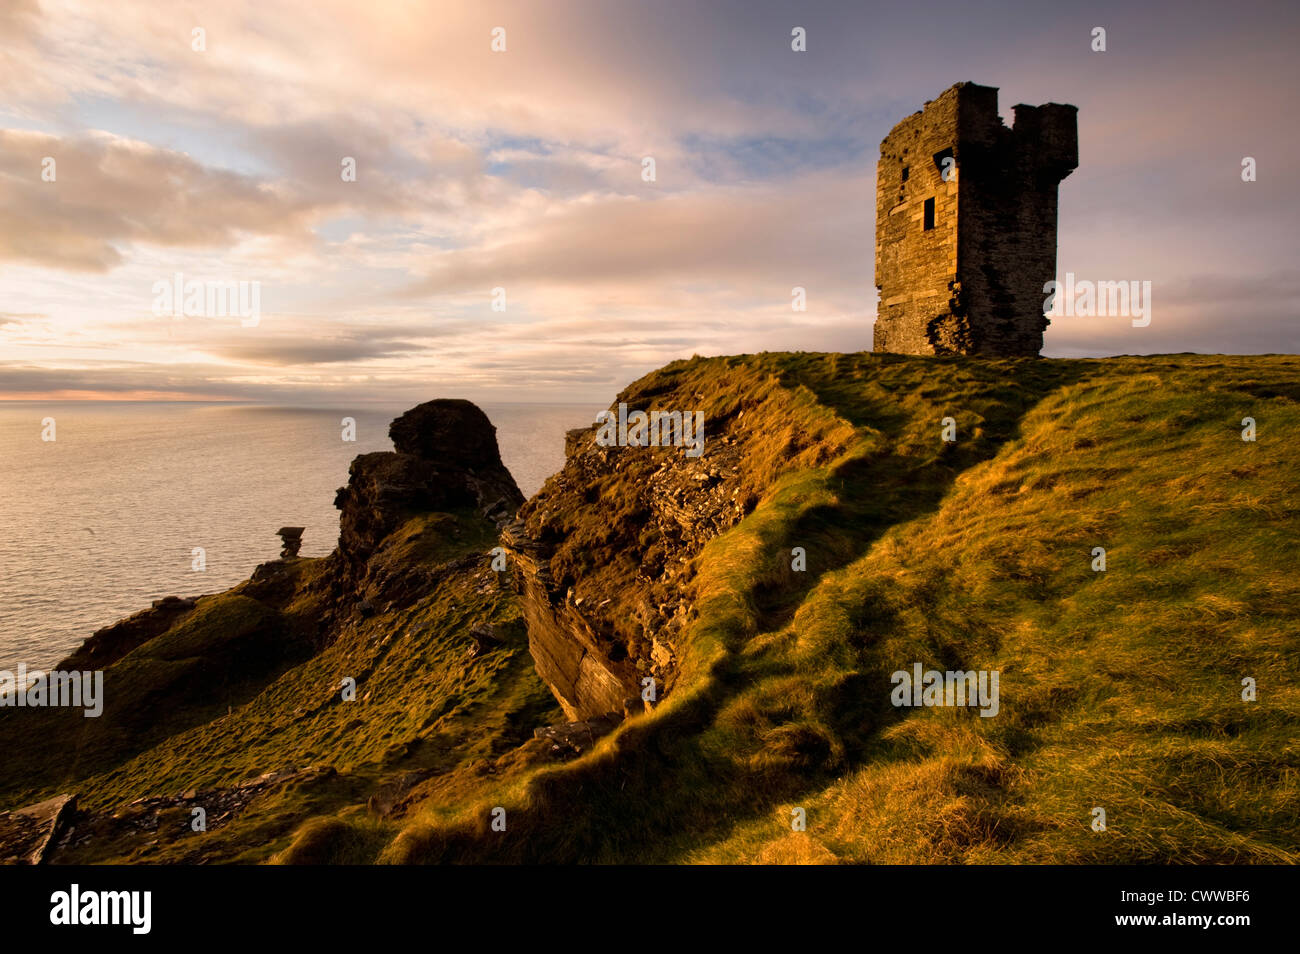 Stone ruins on rocky coastal cliffs - Stock Image